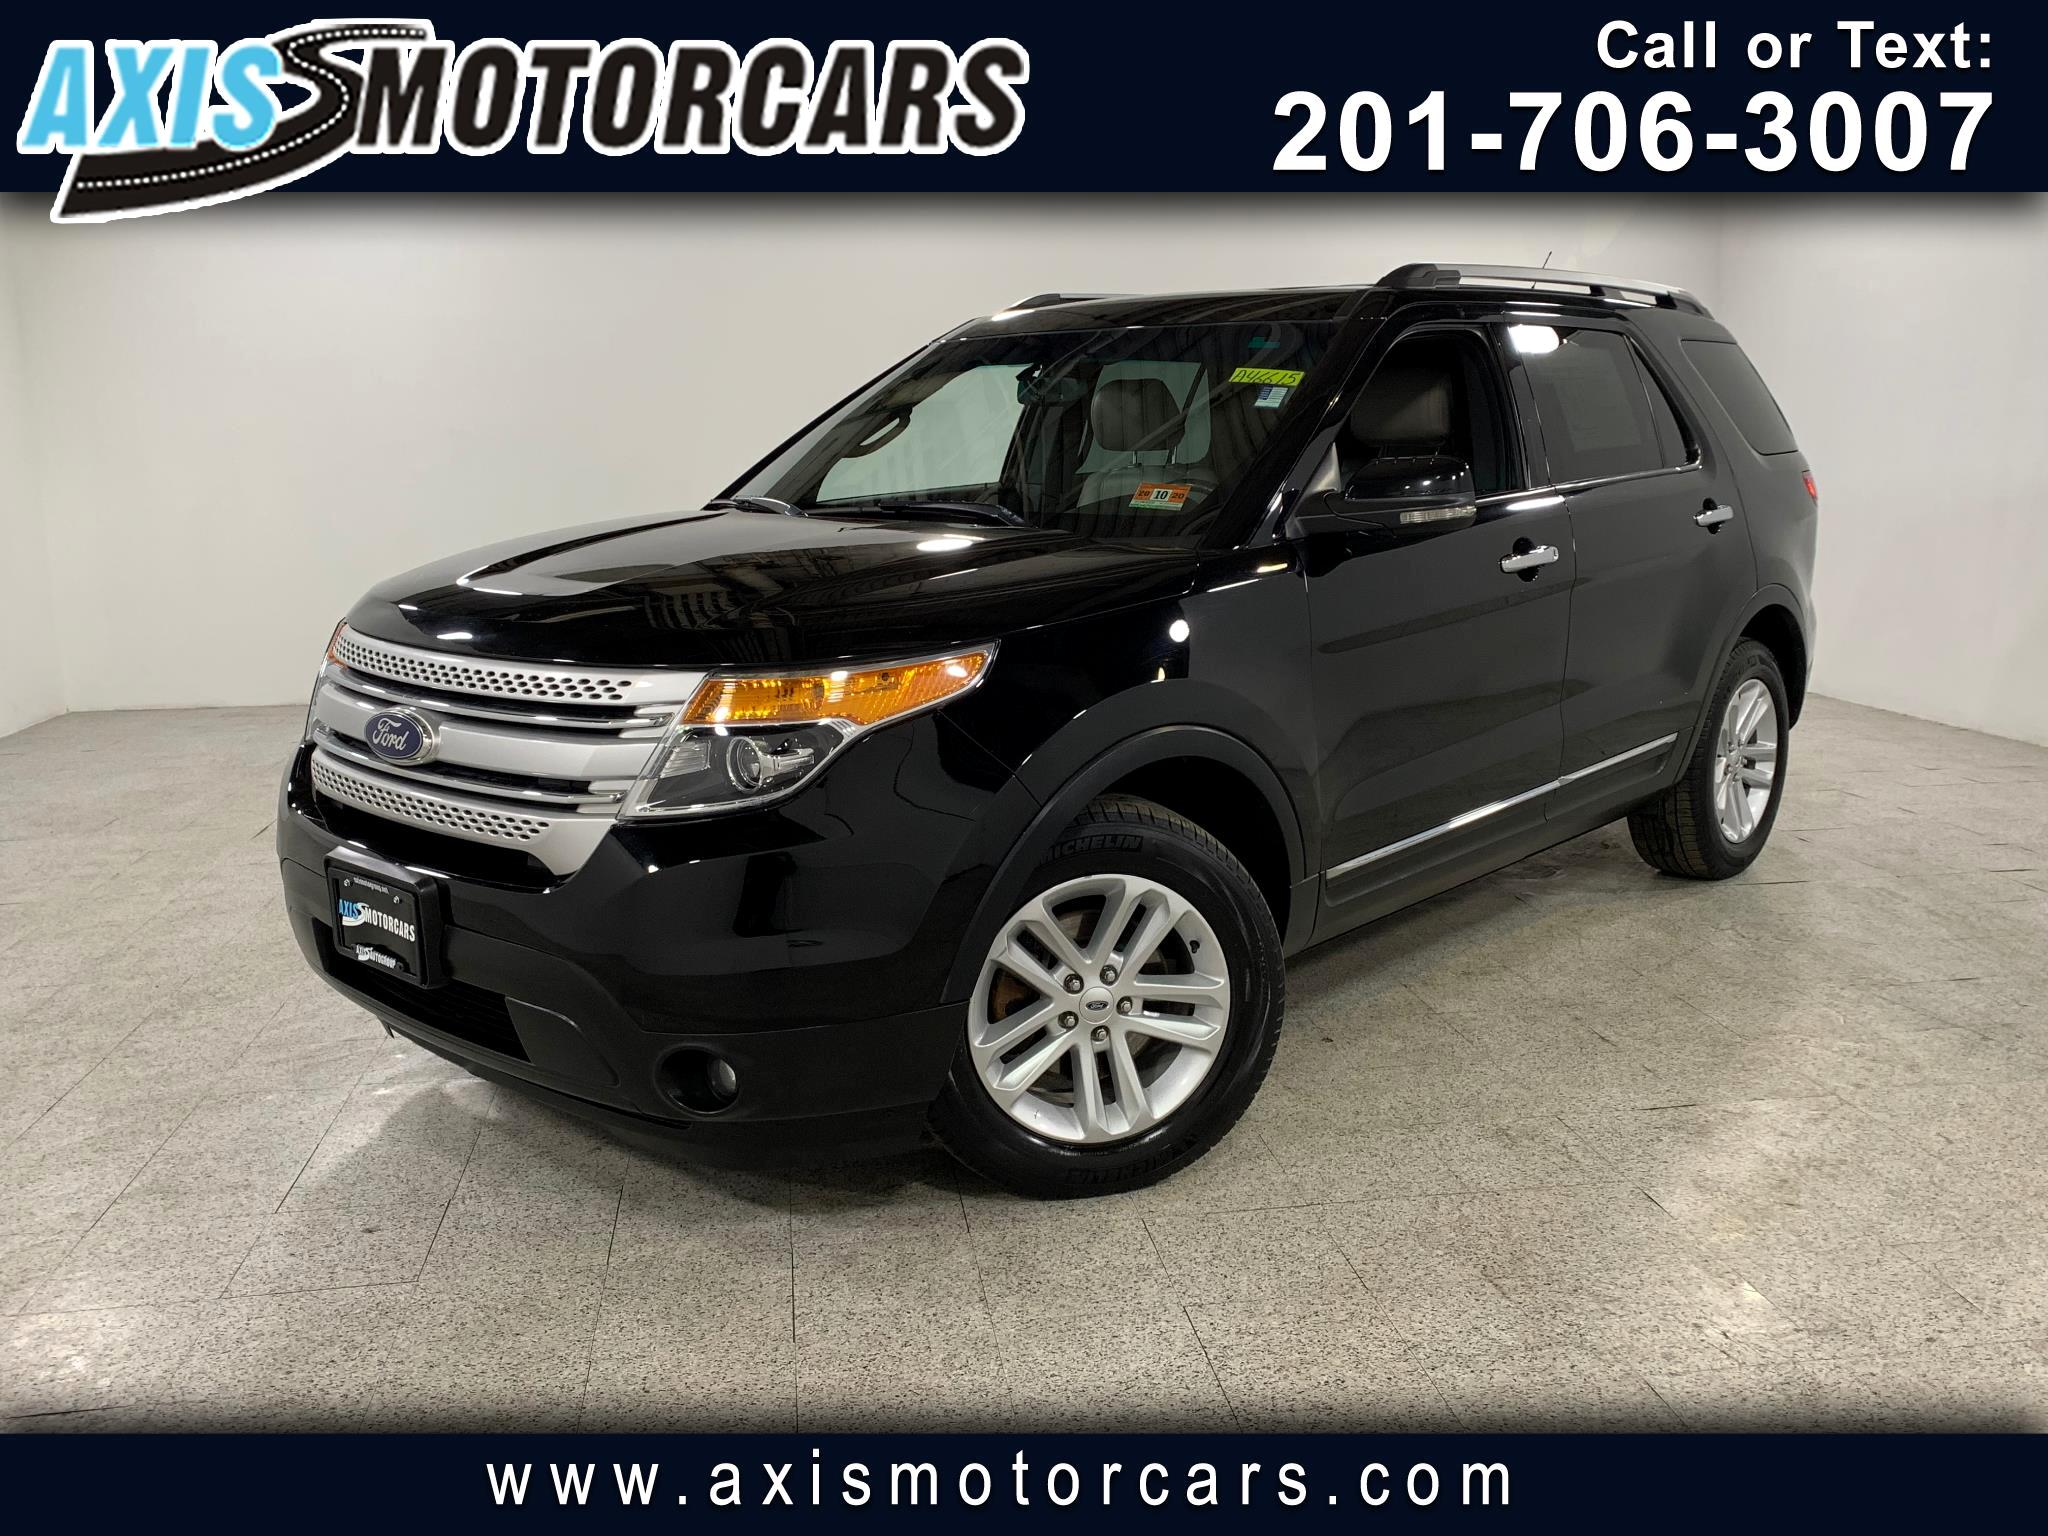 2012 Ford Explorer w/Panoramic Roof Navigation Leather